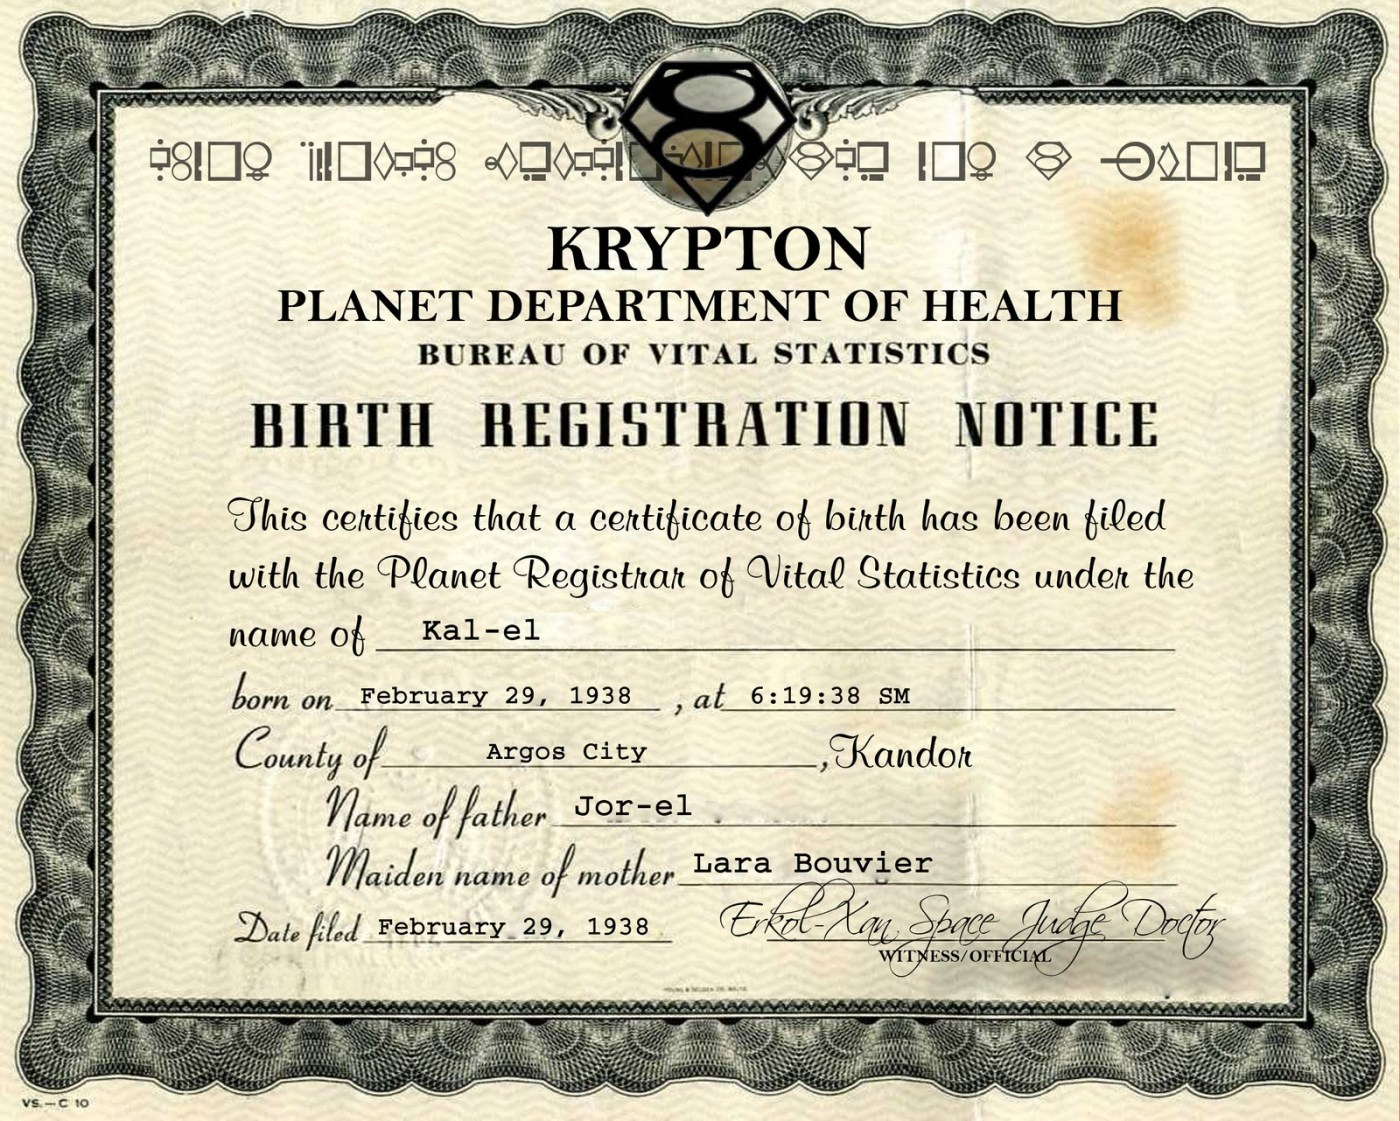 Image of Superman's birth certificate